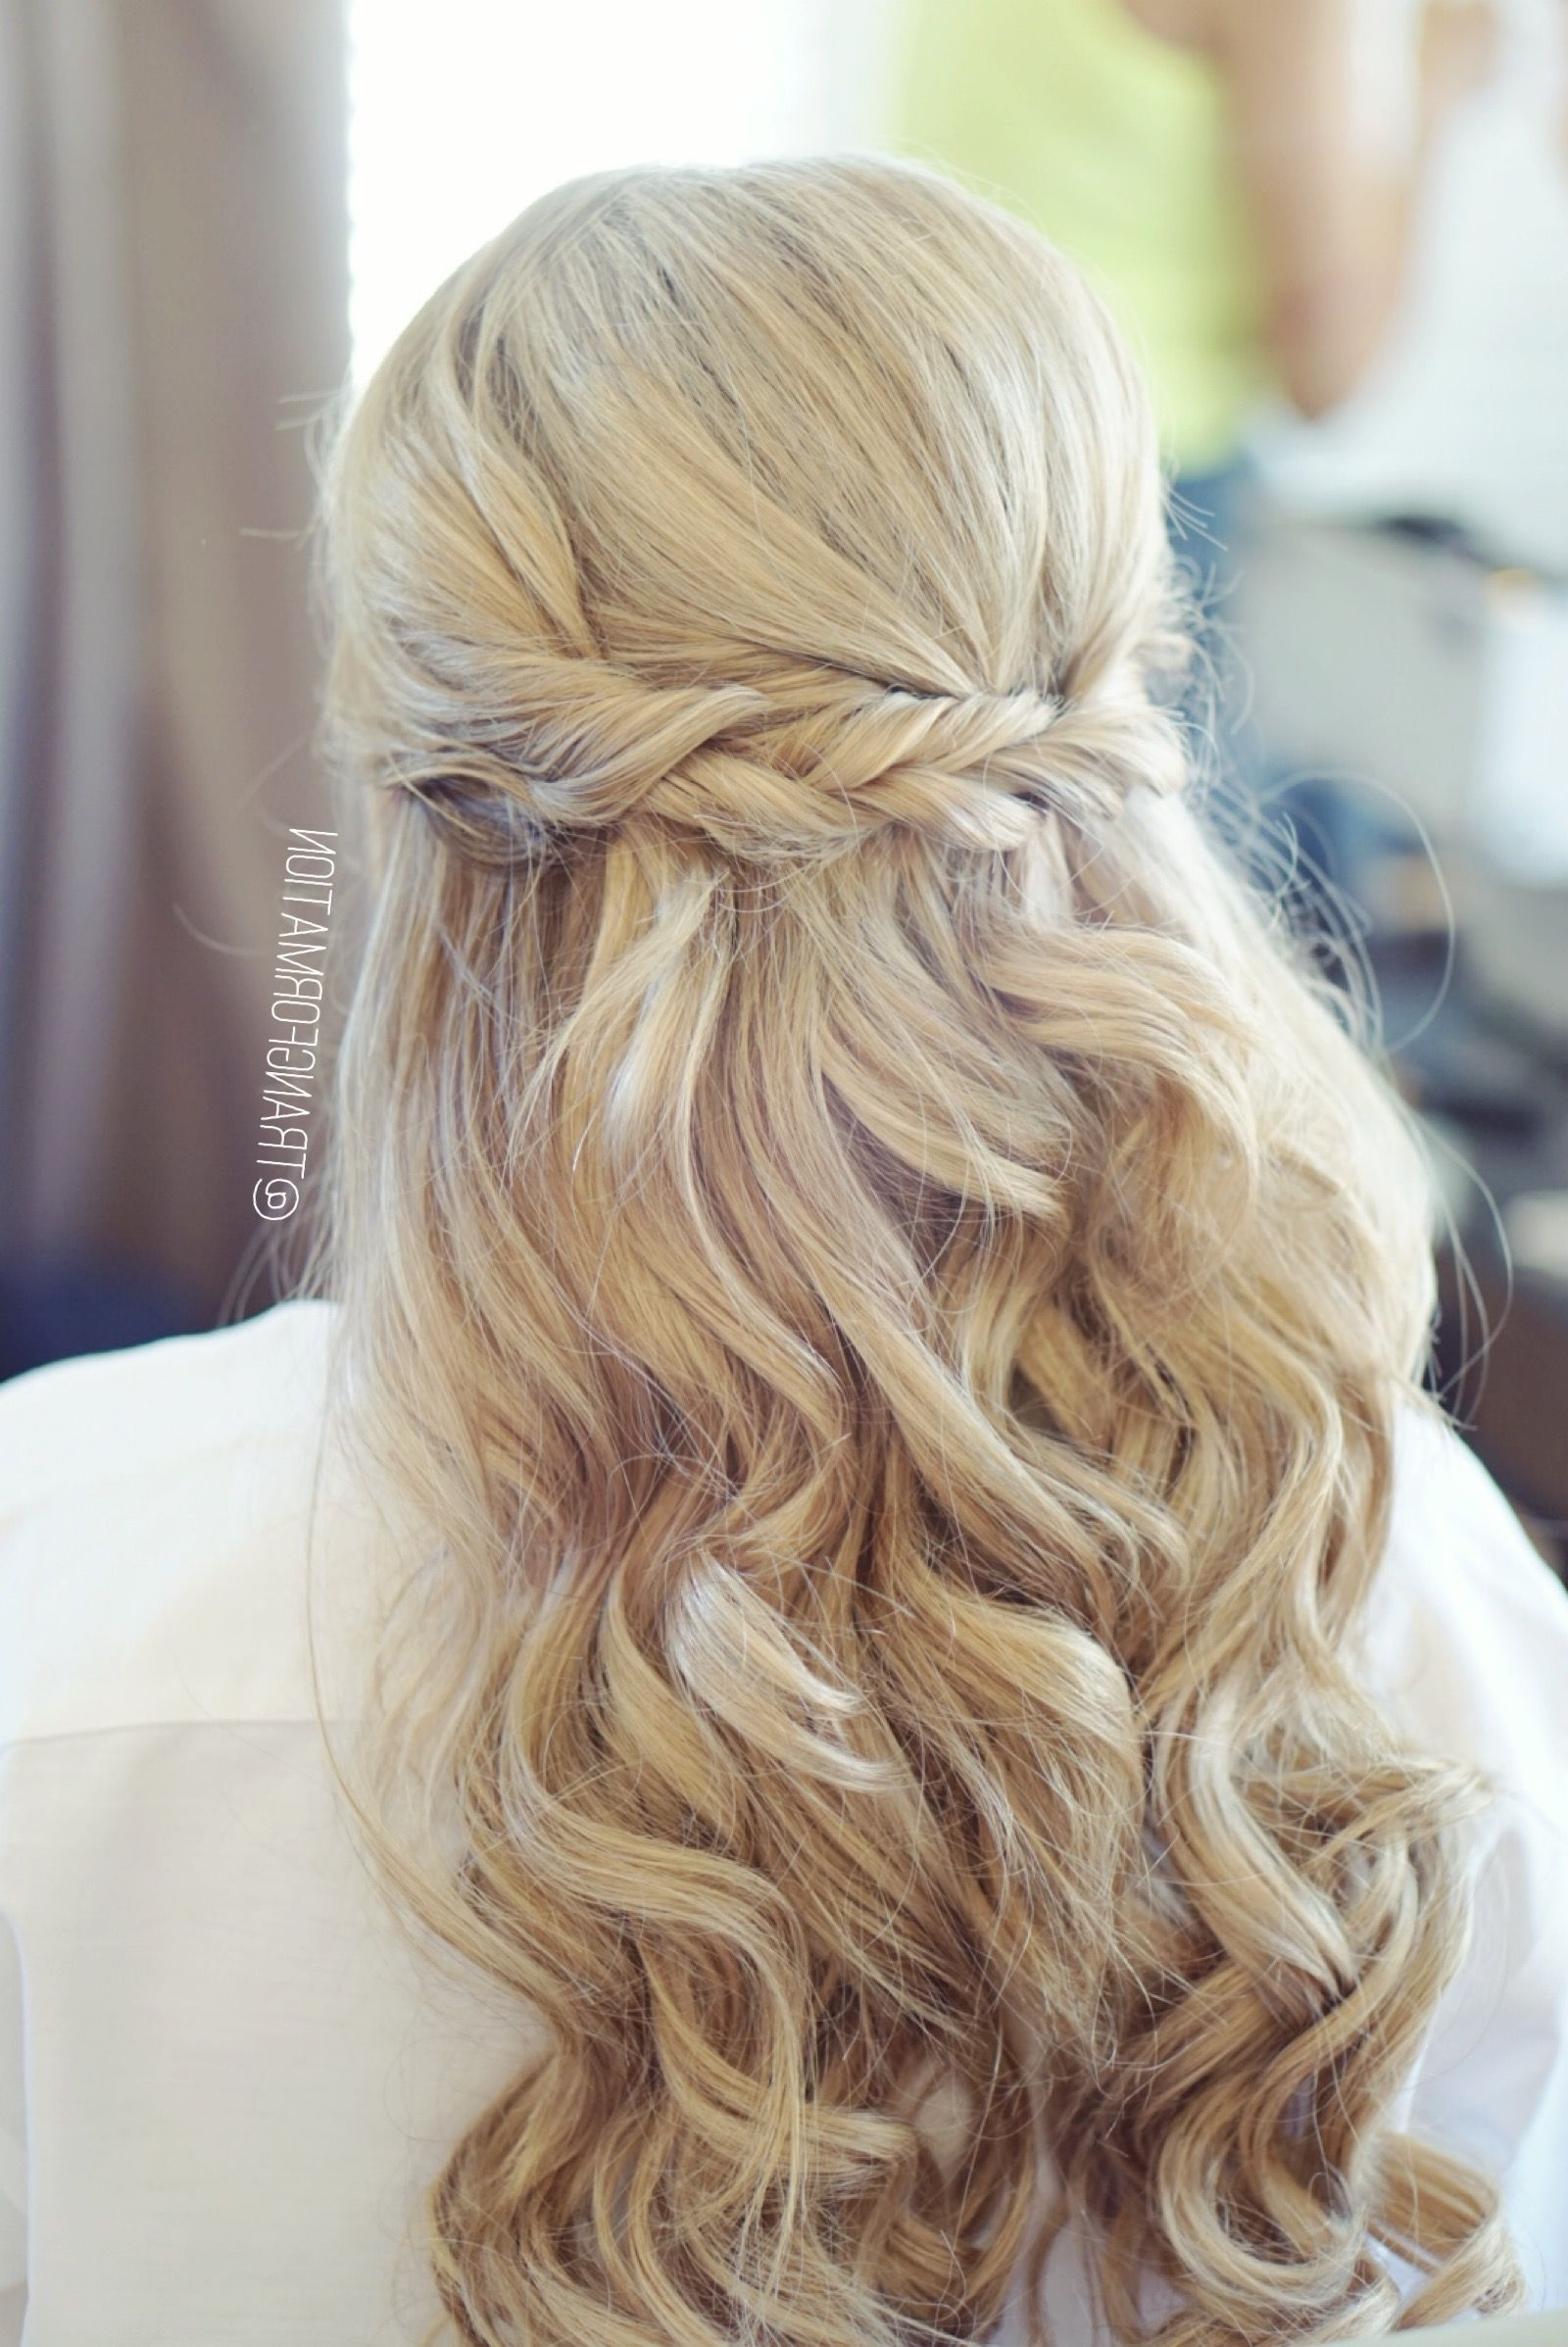 Current Curls Up Half Down Wedding Hairstyles Throughout Enchanting Prom Hairstyles Curly Half Up About Half Up Half Down (View 3 of 15)